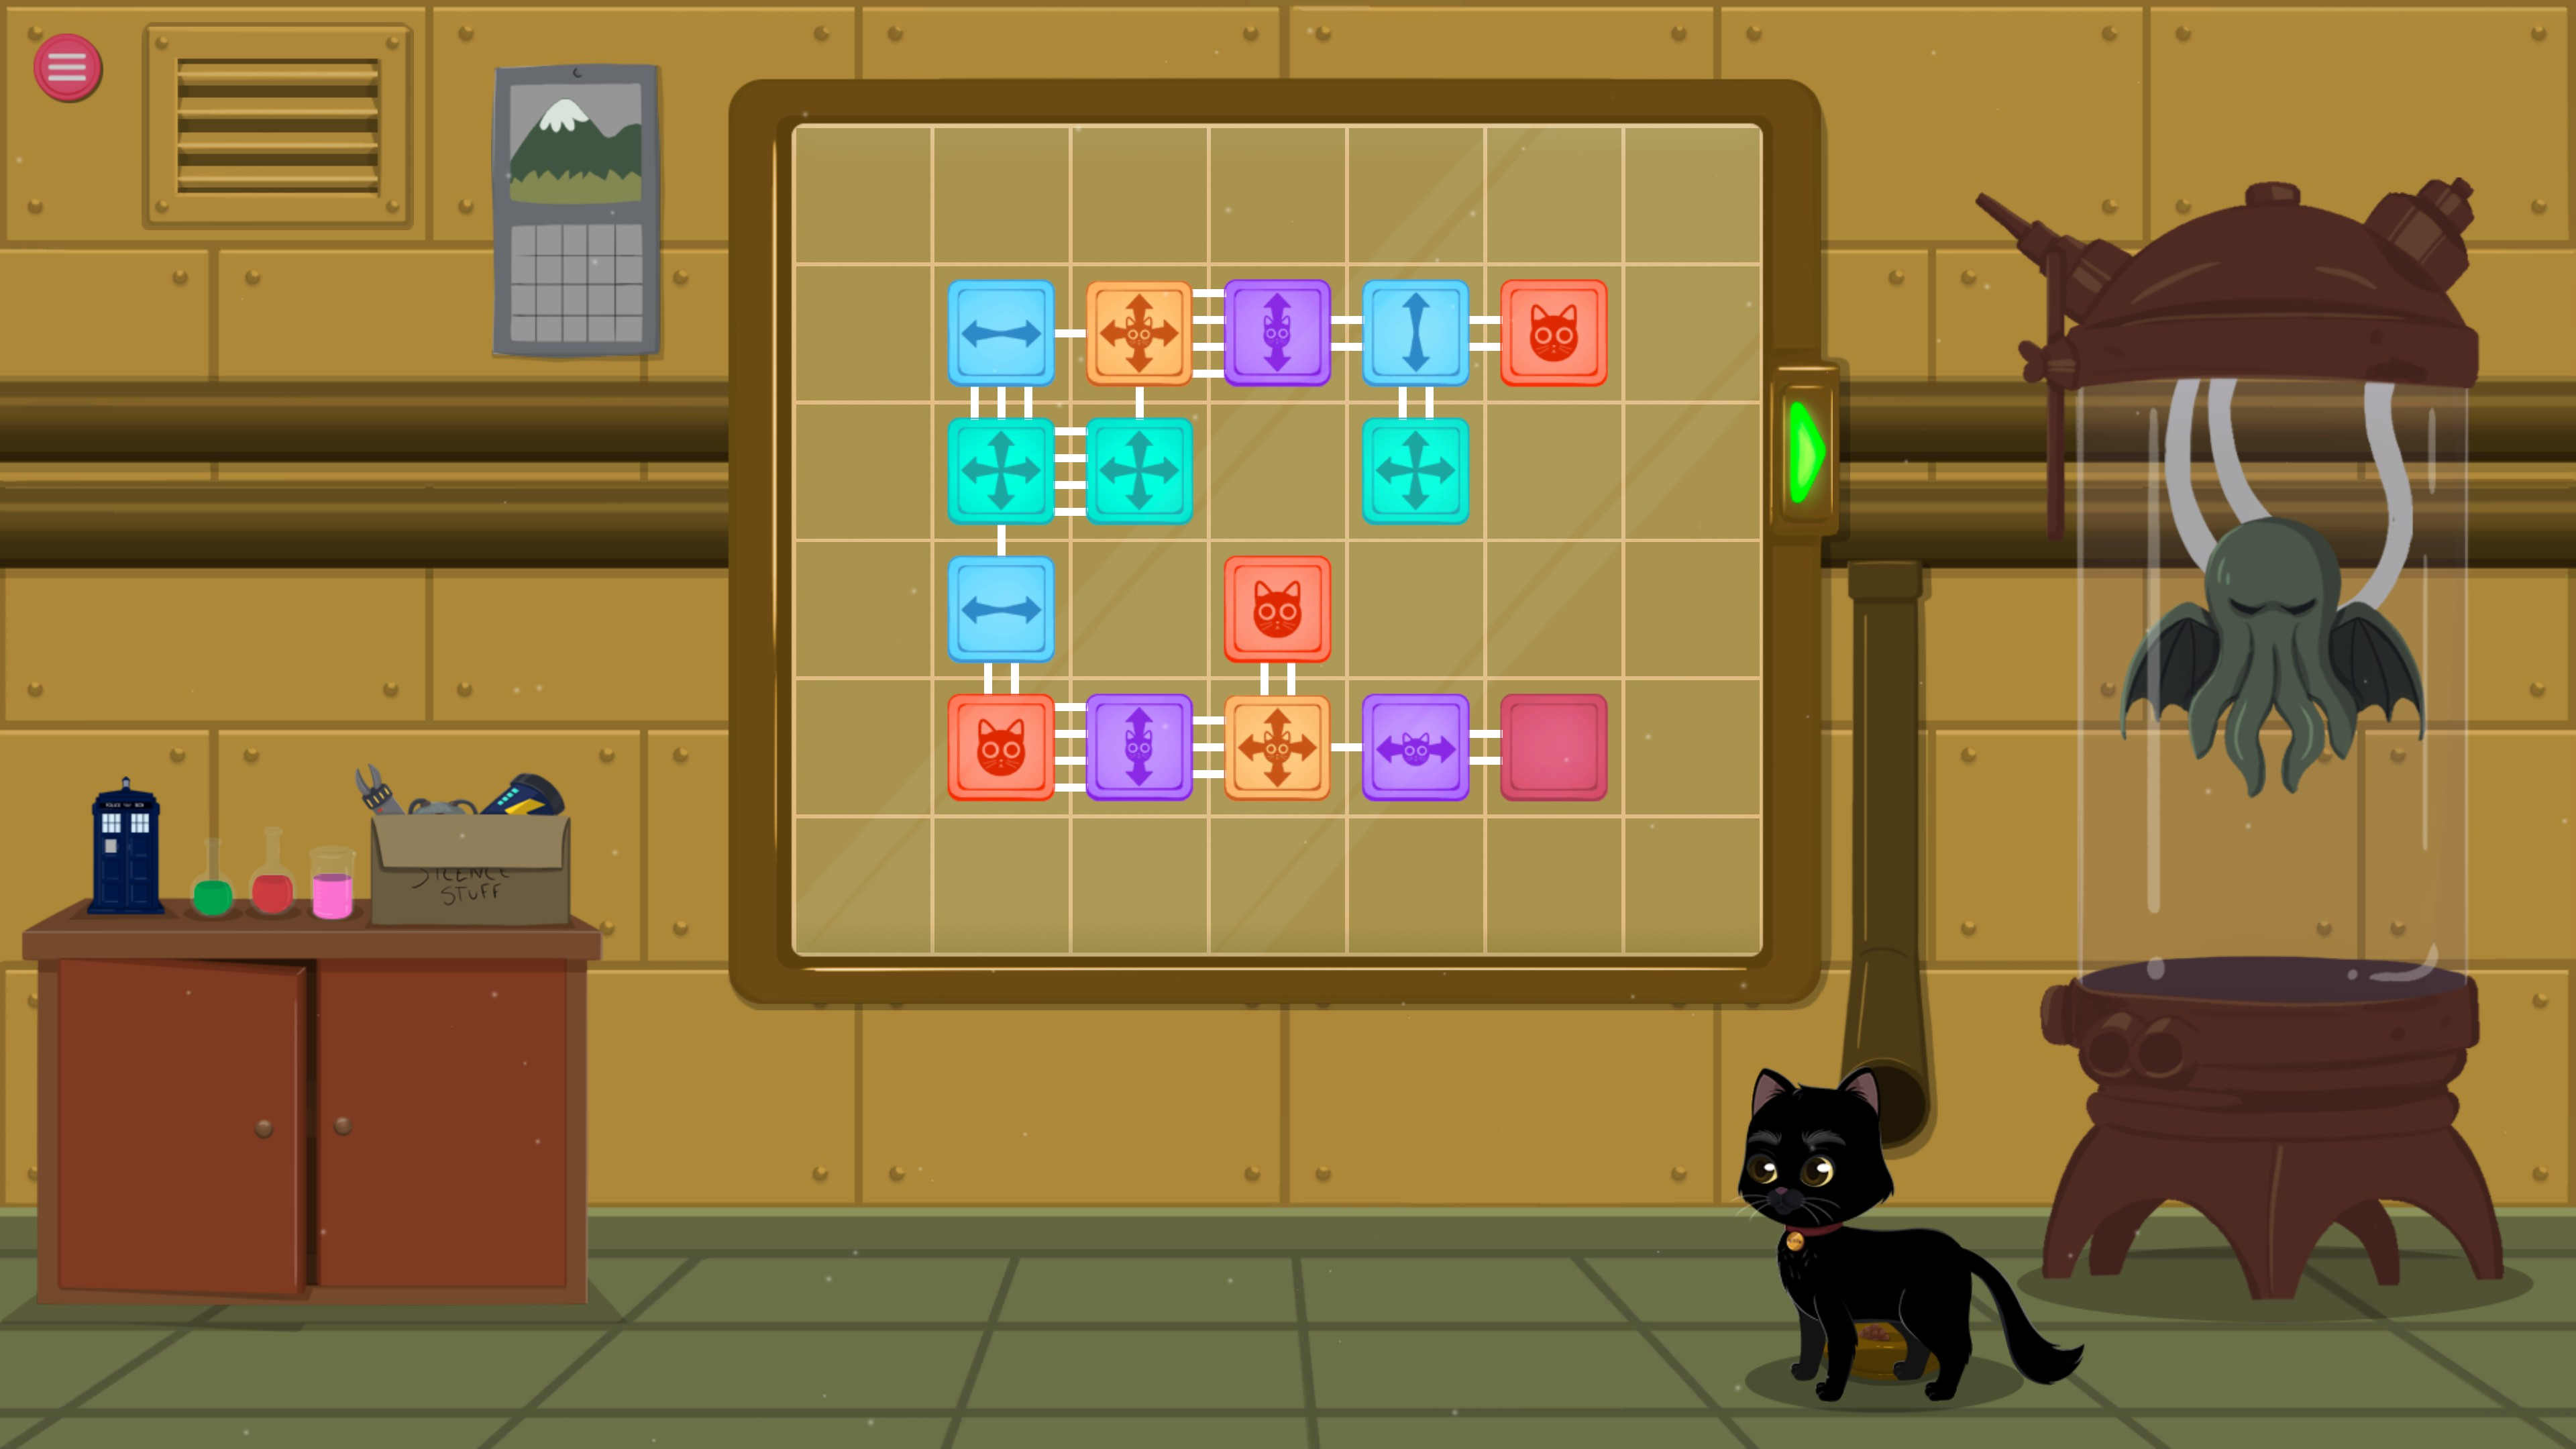 Meow Lab. Leve with 14 pieces and 5 piece types. There is also a small blue police box figure visible in the background.